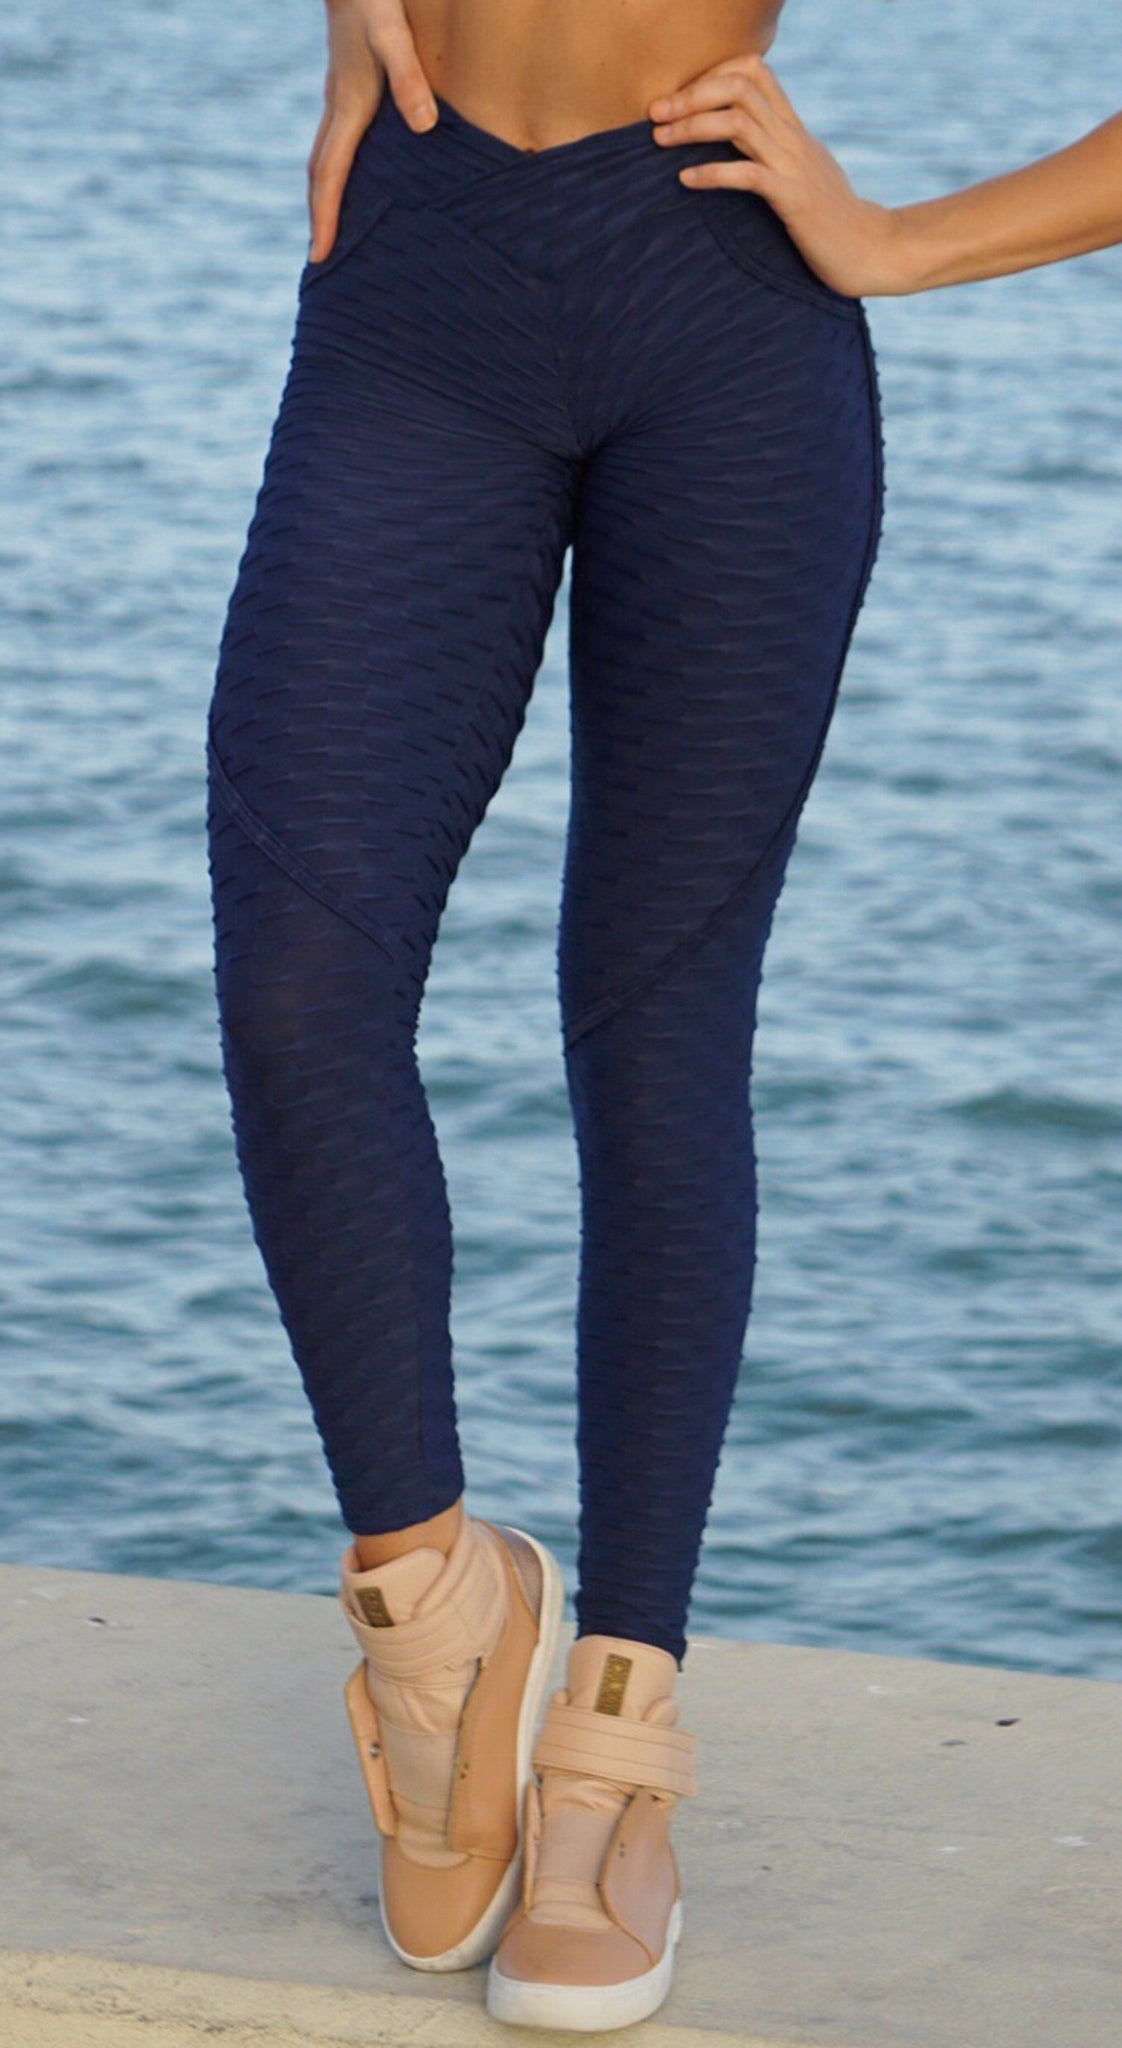 Brazilian Legging -  Anti Cellulite Textured Heart Booty Effect Navy